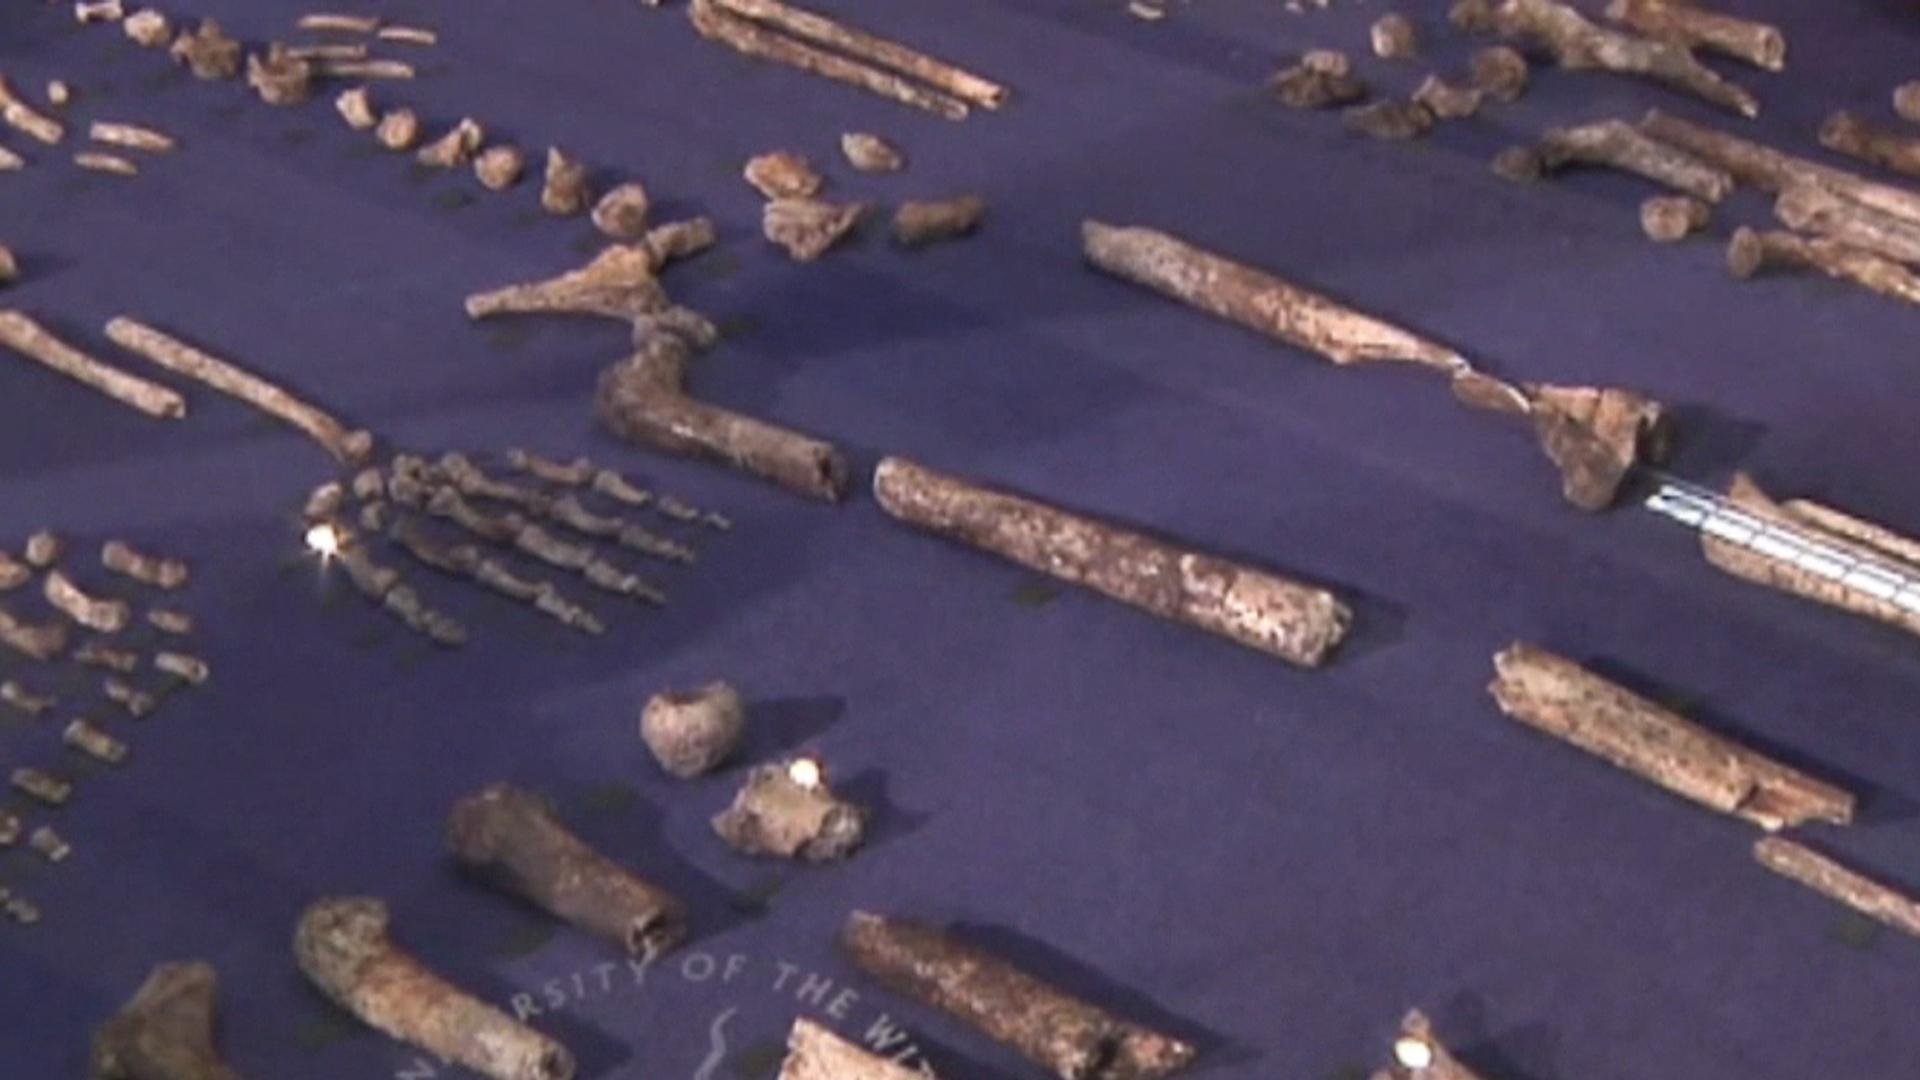 'Mind Blown': Is Human Ancestor Discovery the Long-Sought Missing Link?